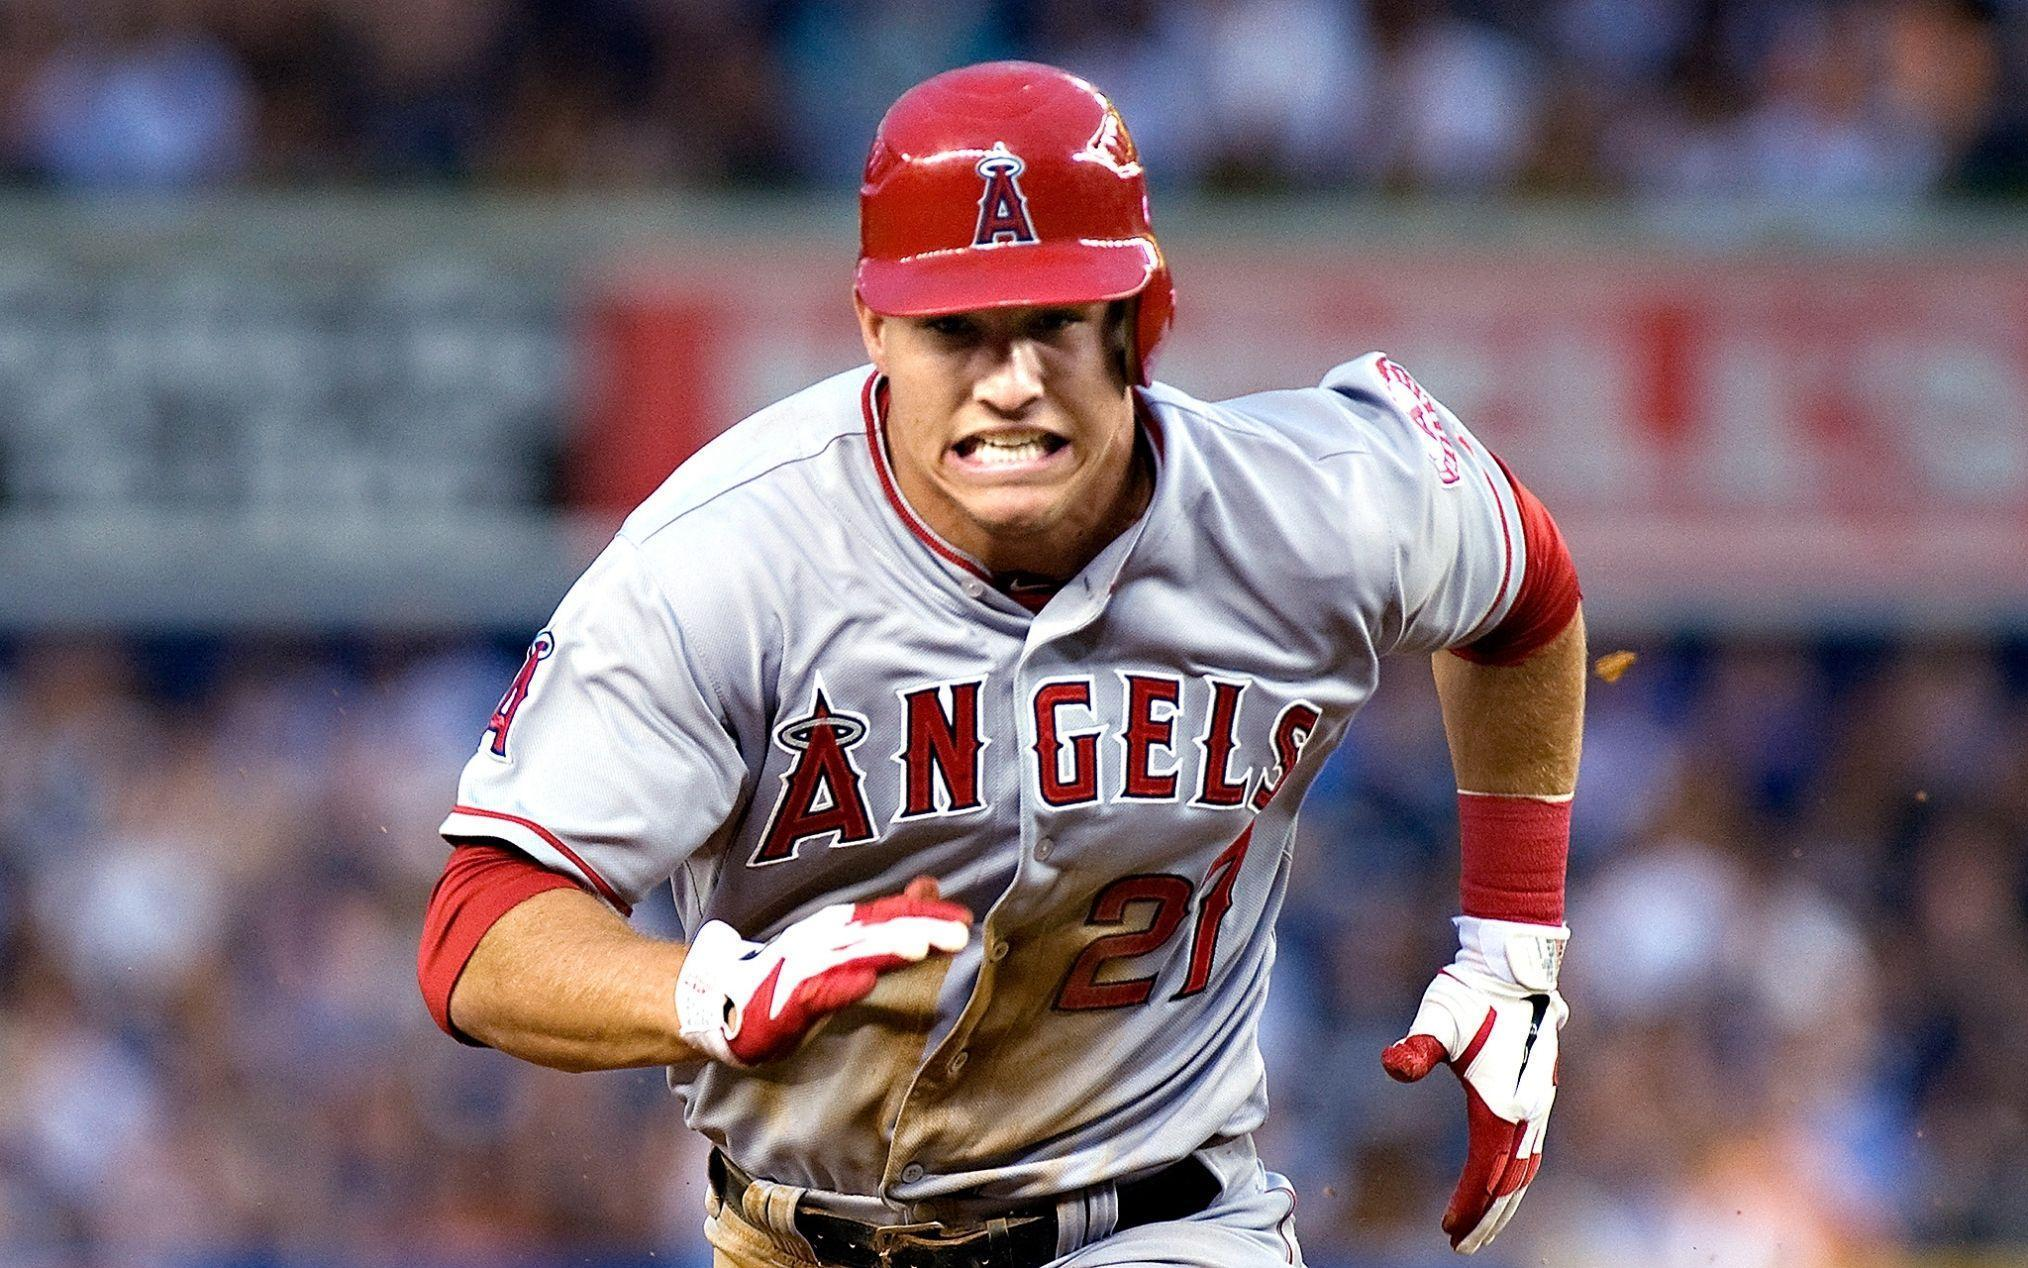 Mike Trout Baseball Player Wallpapers with Mike Trout Wallpapers